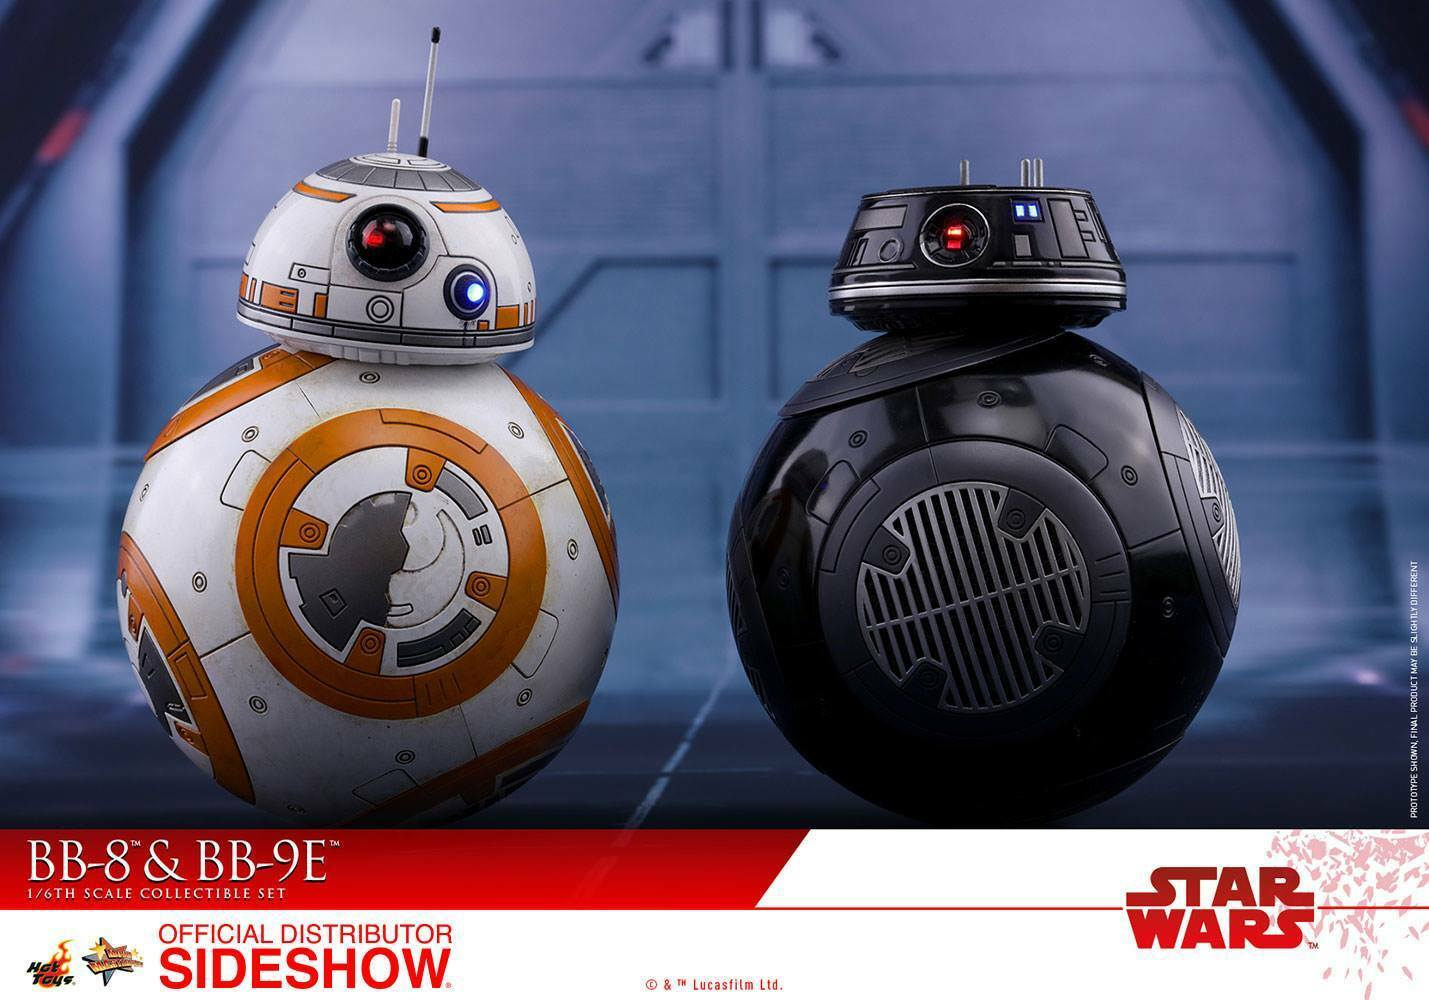 Hot Toys 1:6 Scale Star Wars: The Last Jedi - BB-8 & BB9-E Deluxe Set HT-903190